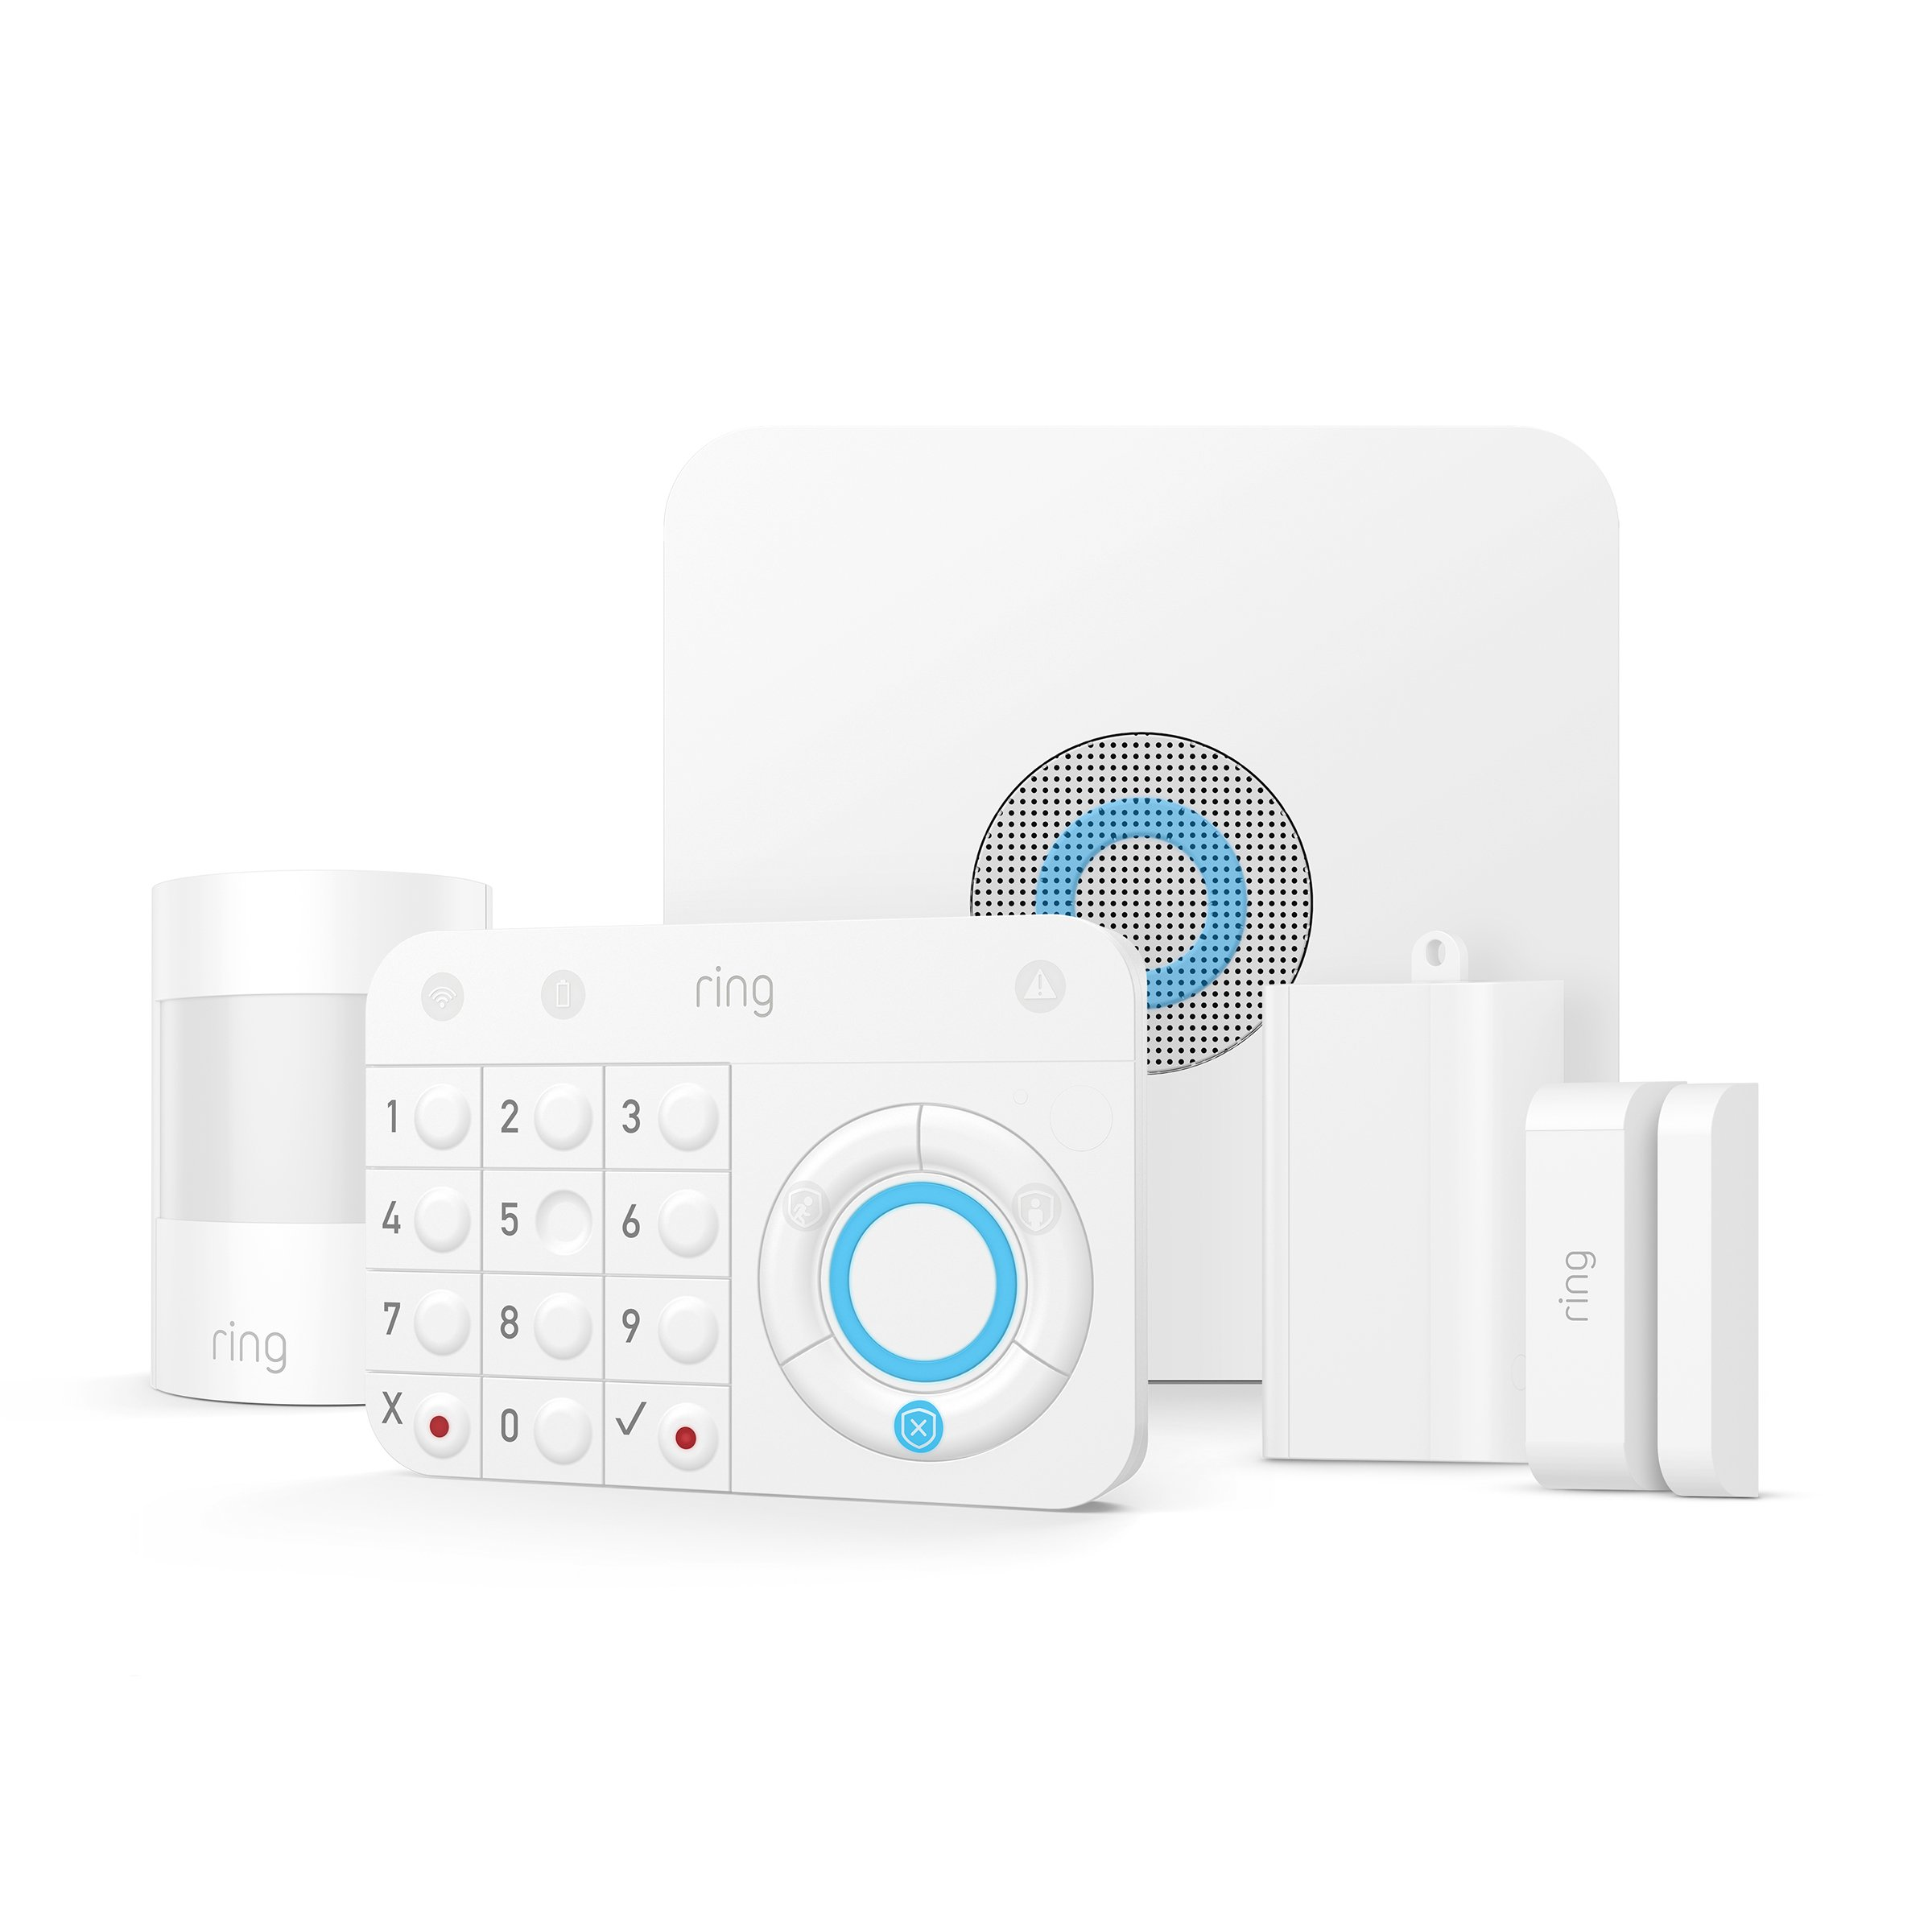 Ring Alarm 5 Piece Kit - Home Security System with optional 24/7 Professional Monitoring - No long-term contracts - Works with Alexa by Ring